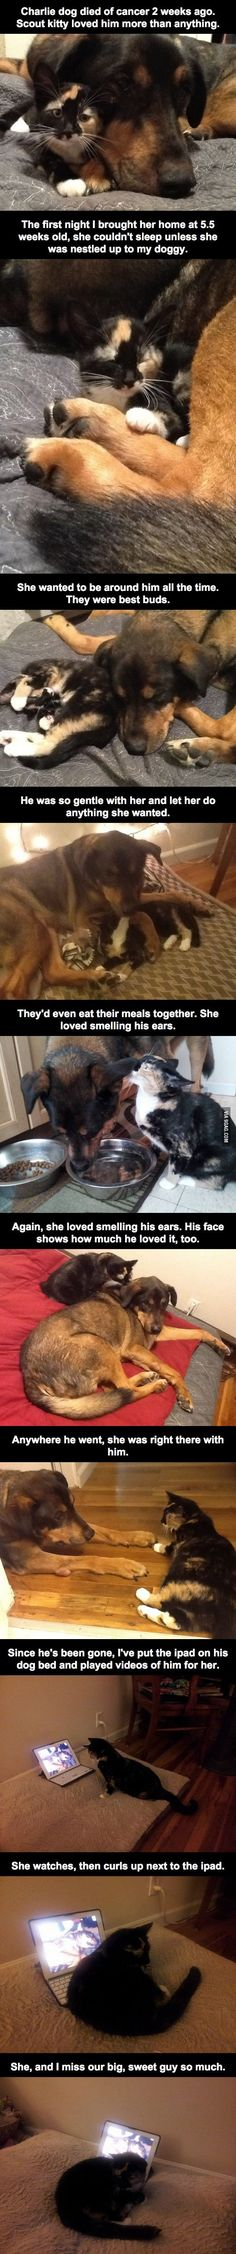 The feels...THE FEELS!!!!!!! D: *sniff* Now I need a new heart...because this one's broken!!! D:   His Dog Died Of Cancer 2 Weeks Ago. The House Cat's Reaction Was Heartbreaking.